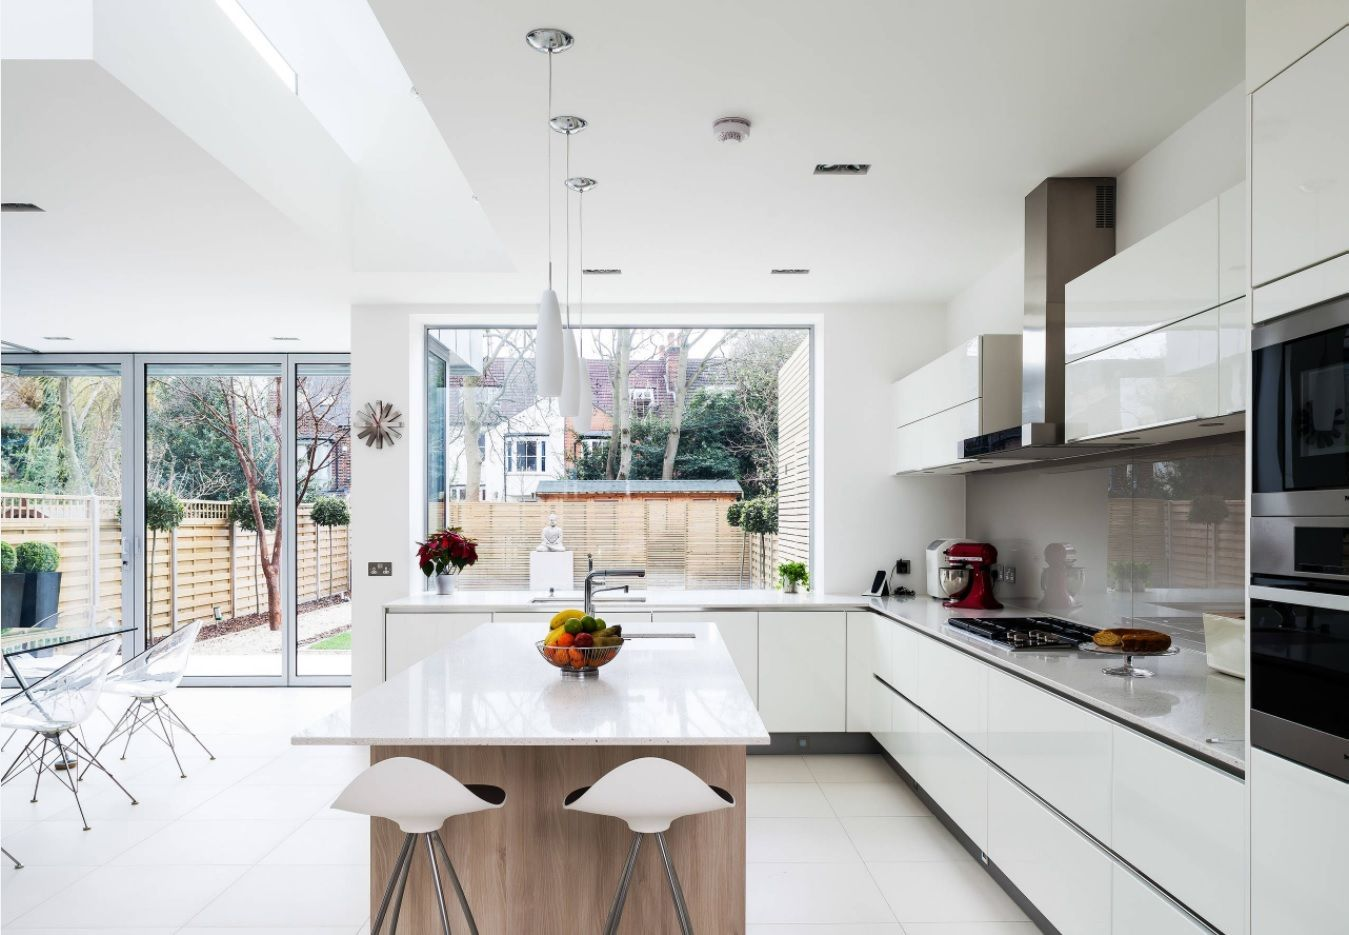 White idyll in the hi-tech & Scandi mix for open kitchen design of the private suburb cottage